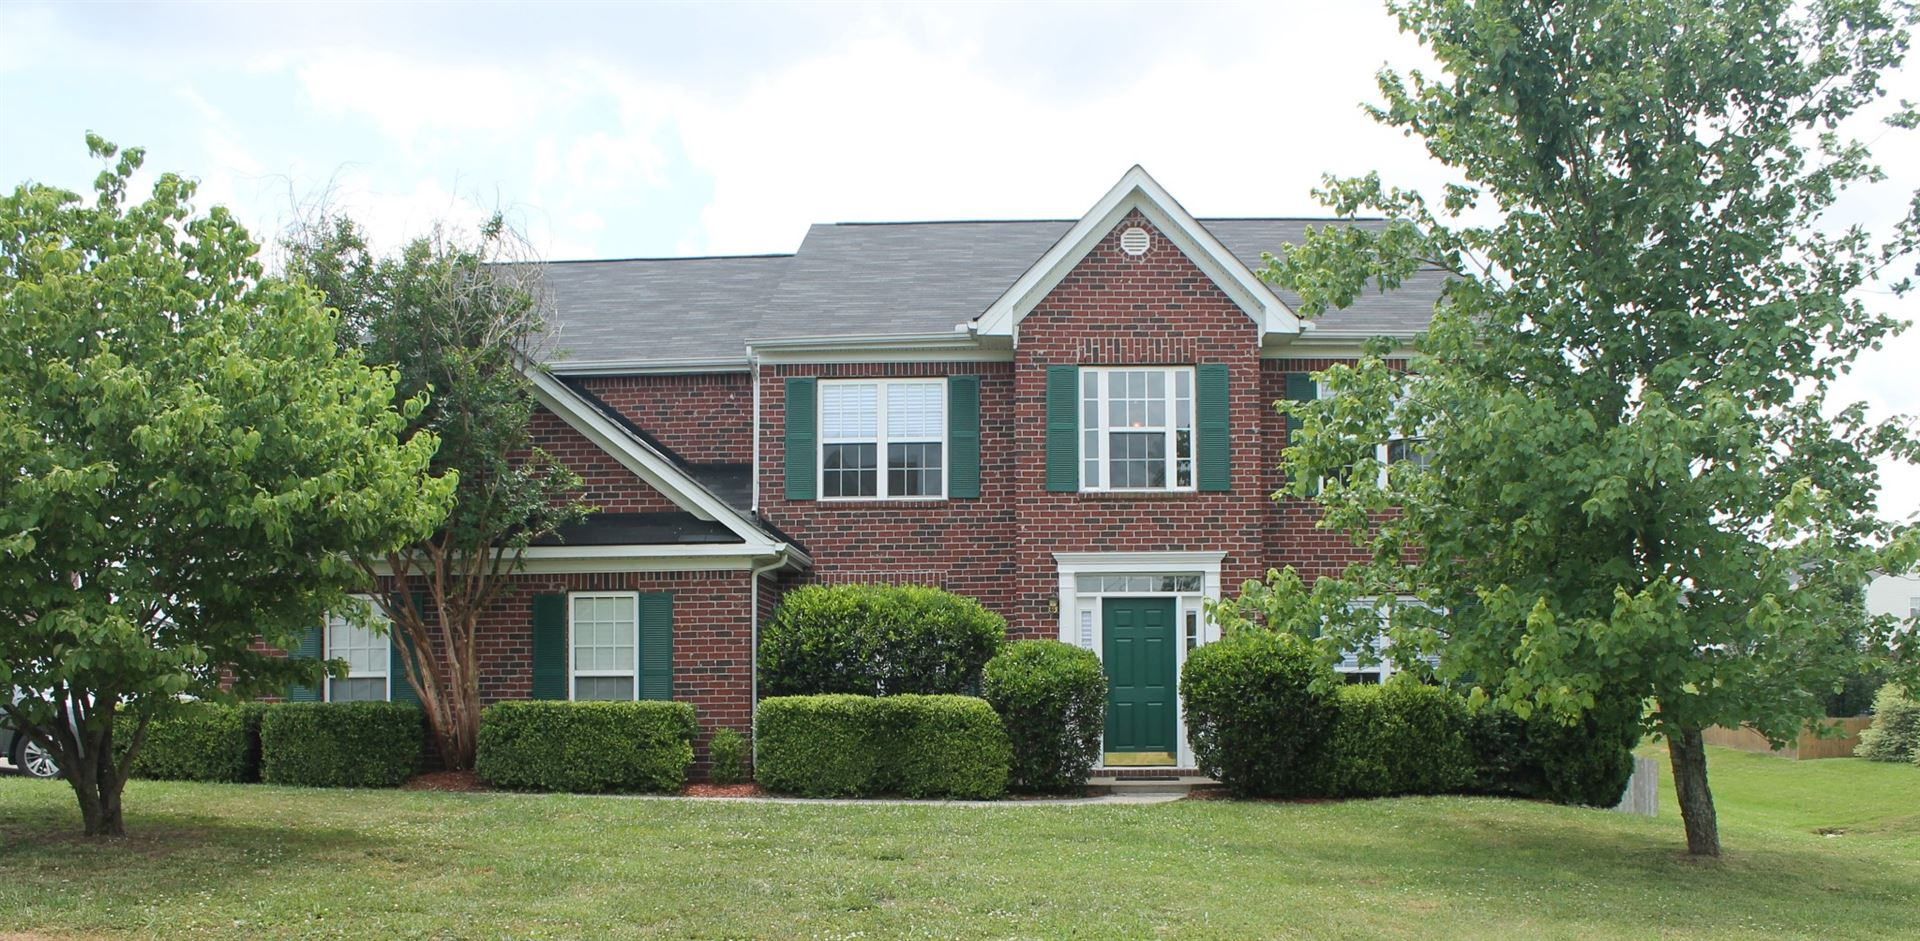 Photo of 4000 Cadence Dr, Spring Hill, TN 37174 (MLS # 2260574)